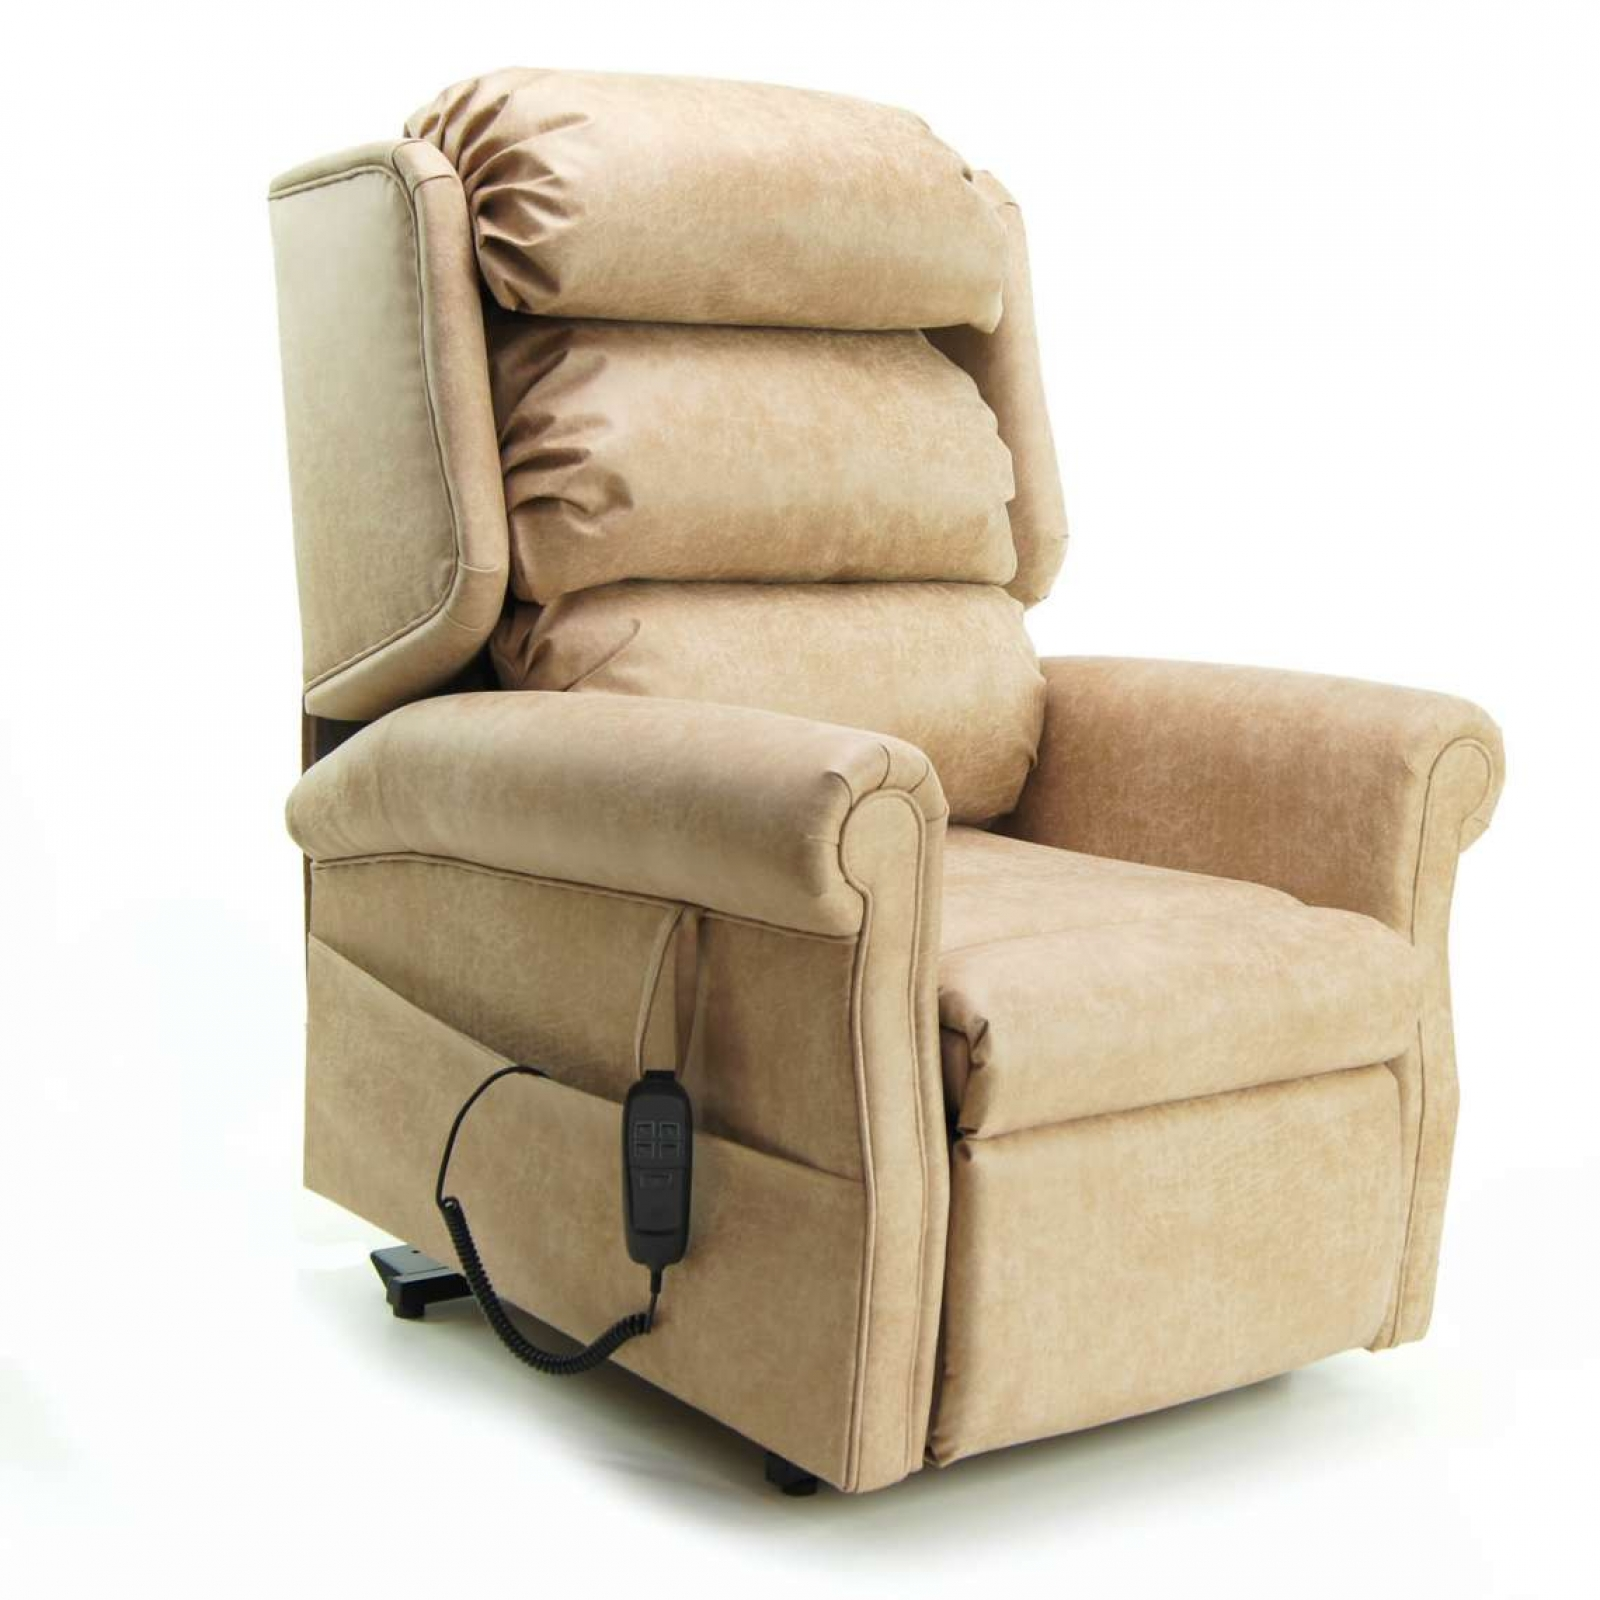 Hire Quality Rise & Recline Chairs Hampshire | How It ...